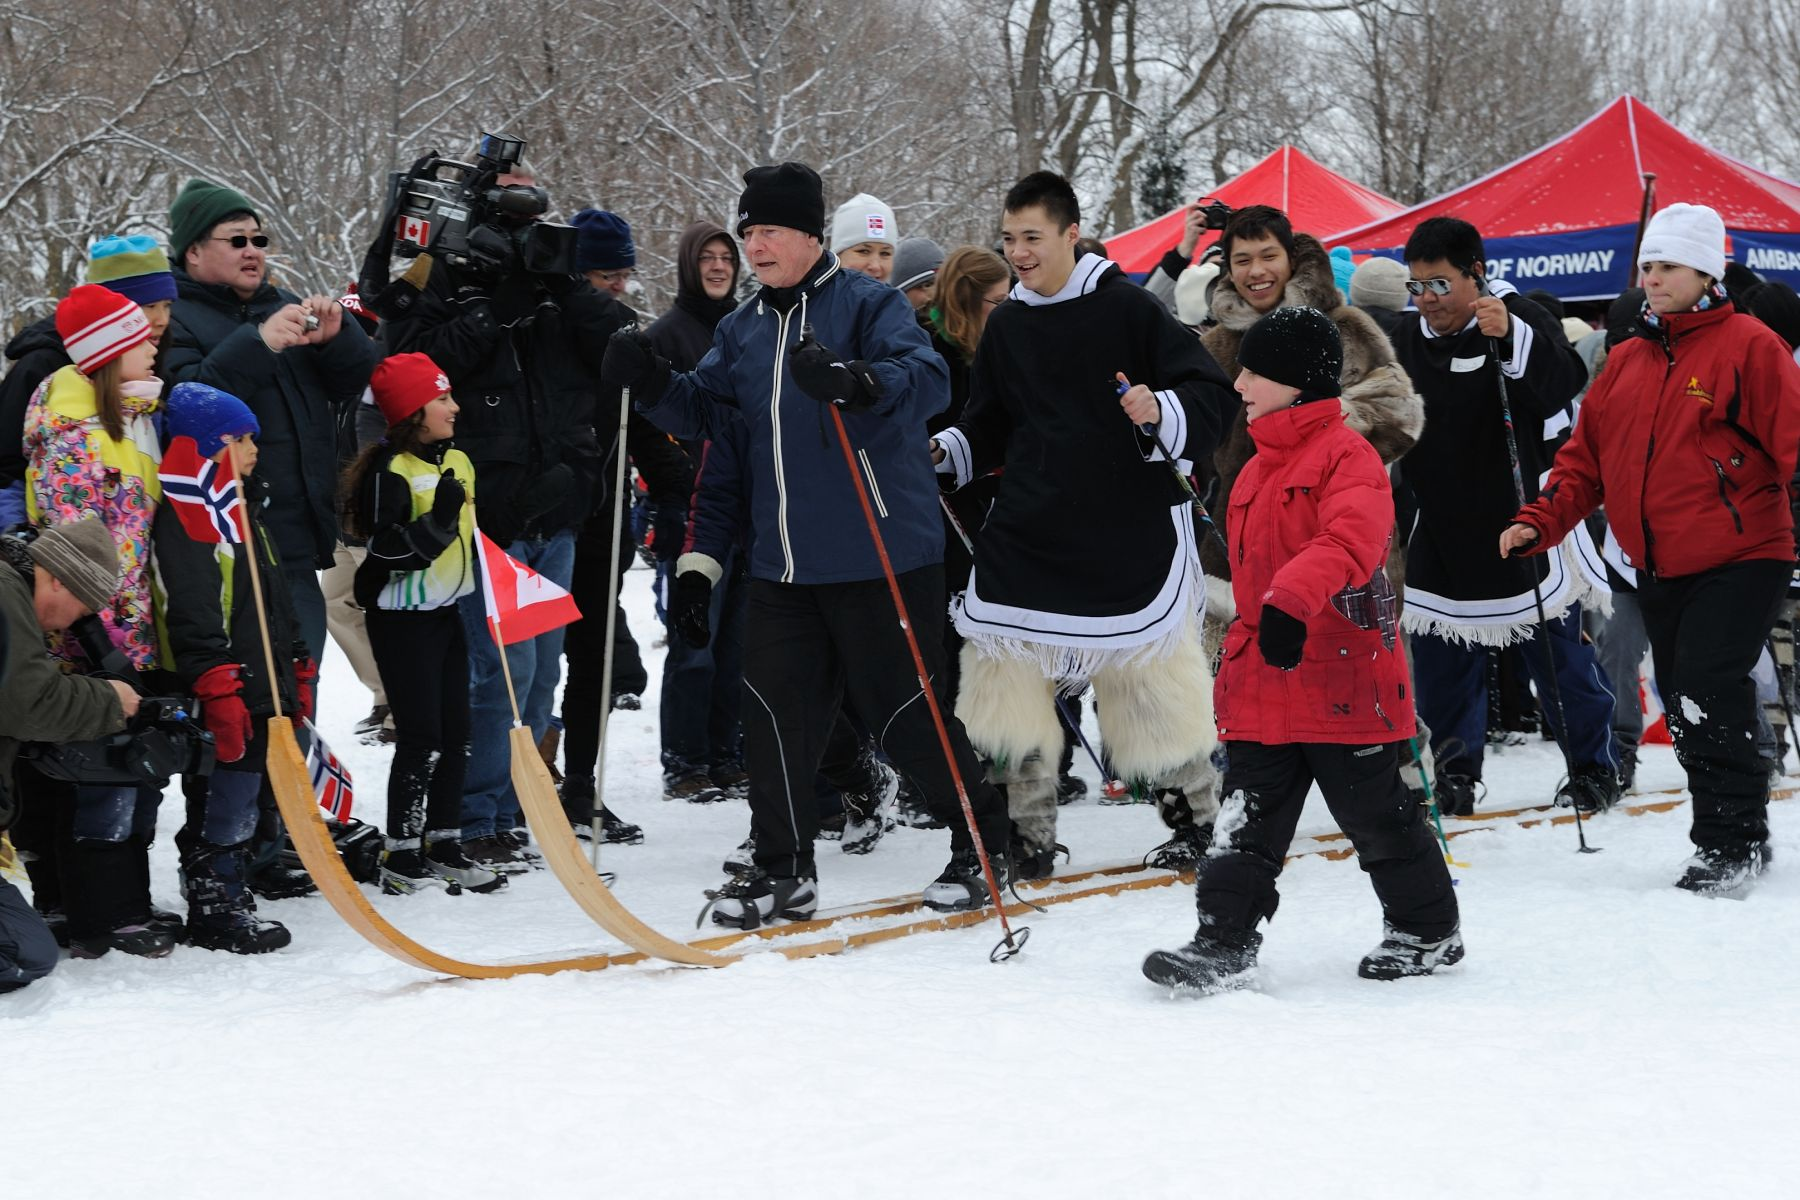 His Excellency participated in the Giant Ski Race, presented by the Royal Norwegian Embassy. During this friendly competition, the Governor General competed against none other than His Excellency Else Berit Eikeland, Ambassador of Norway; His Excellency Teppo Tauriainen, Ambassador of Sweden; His Excellency Risto Piipponen, Ambassador of Finland; 